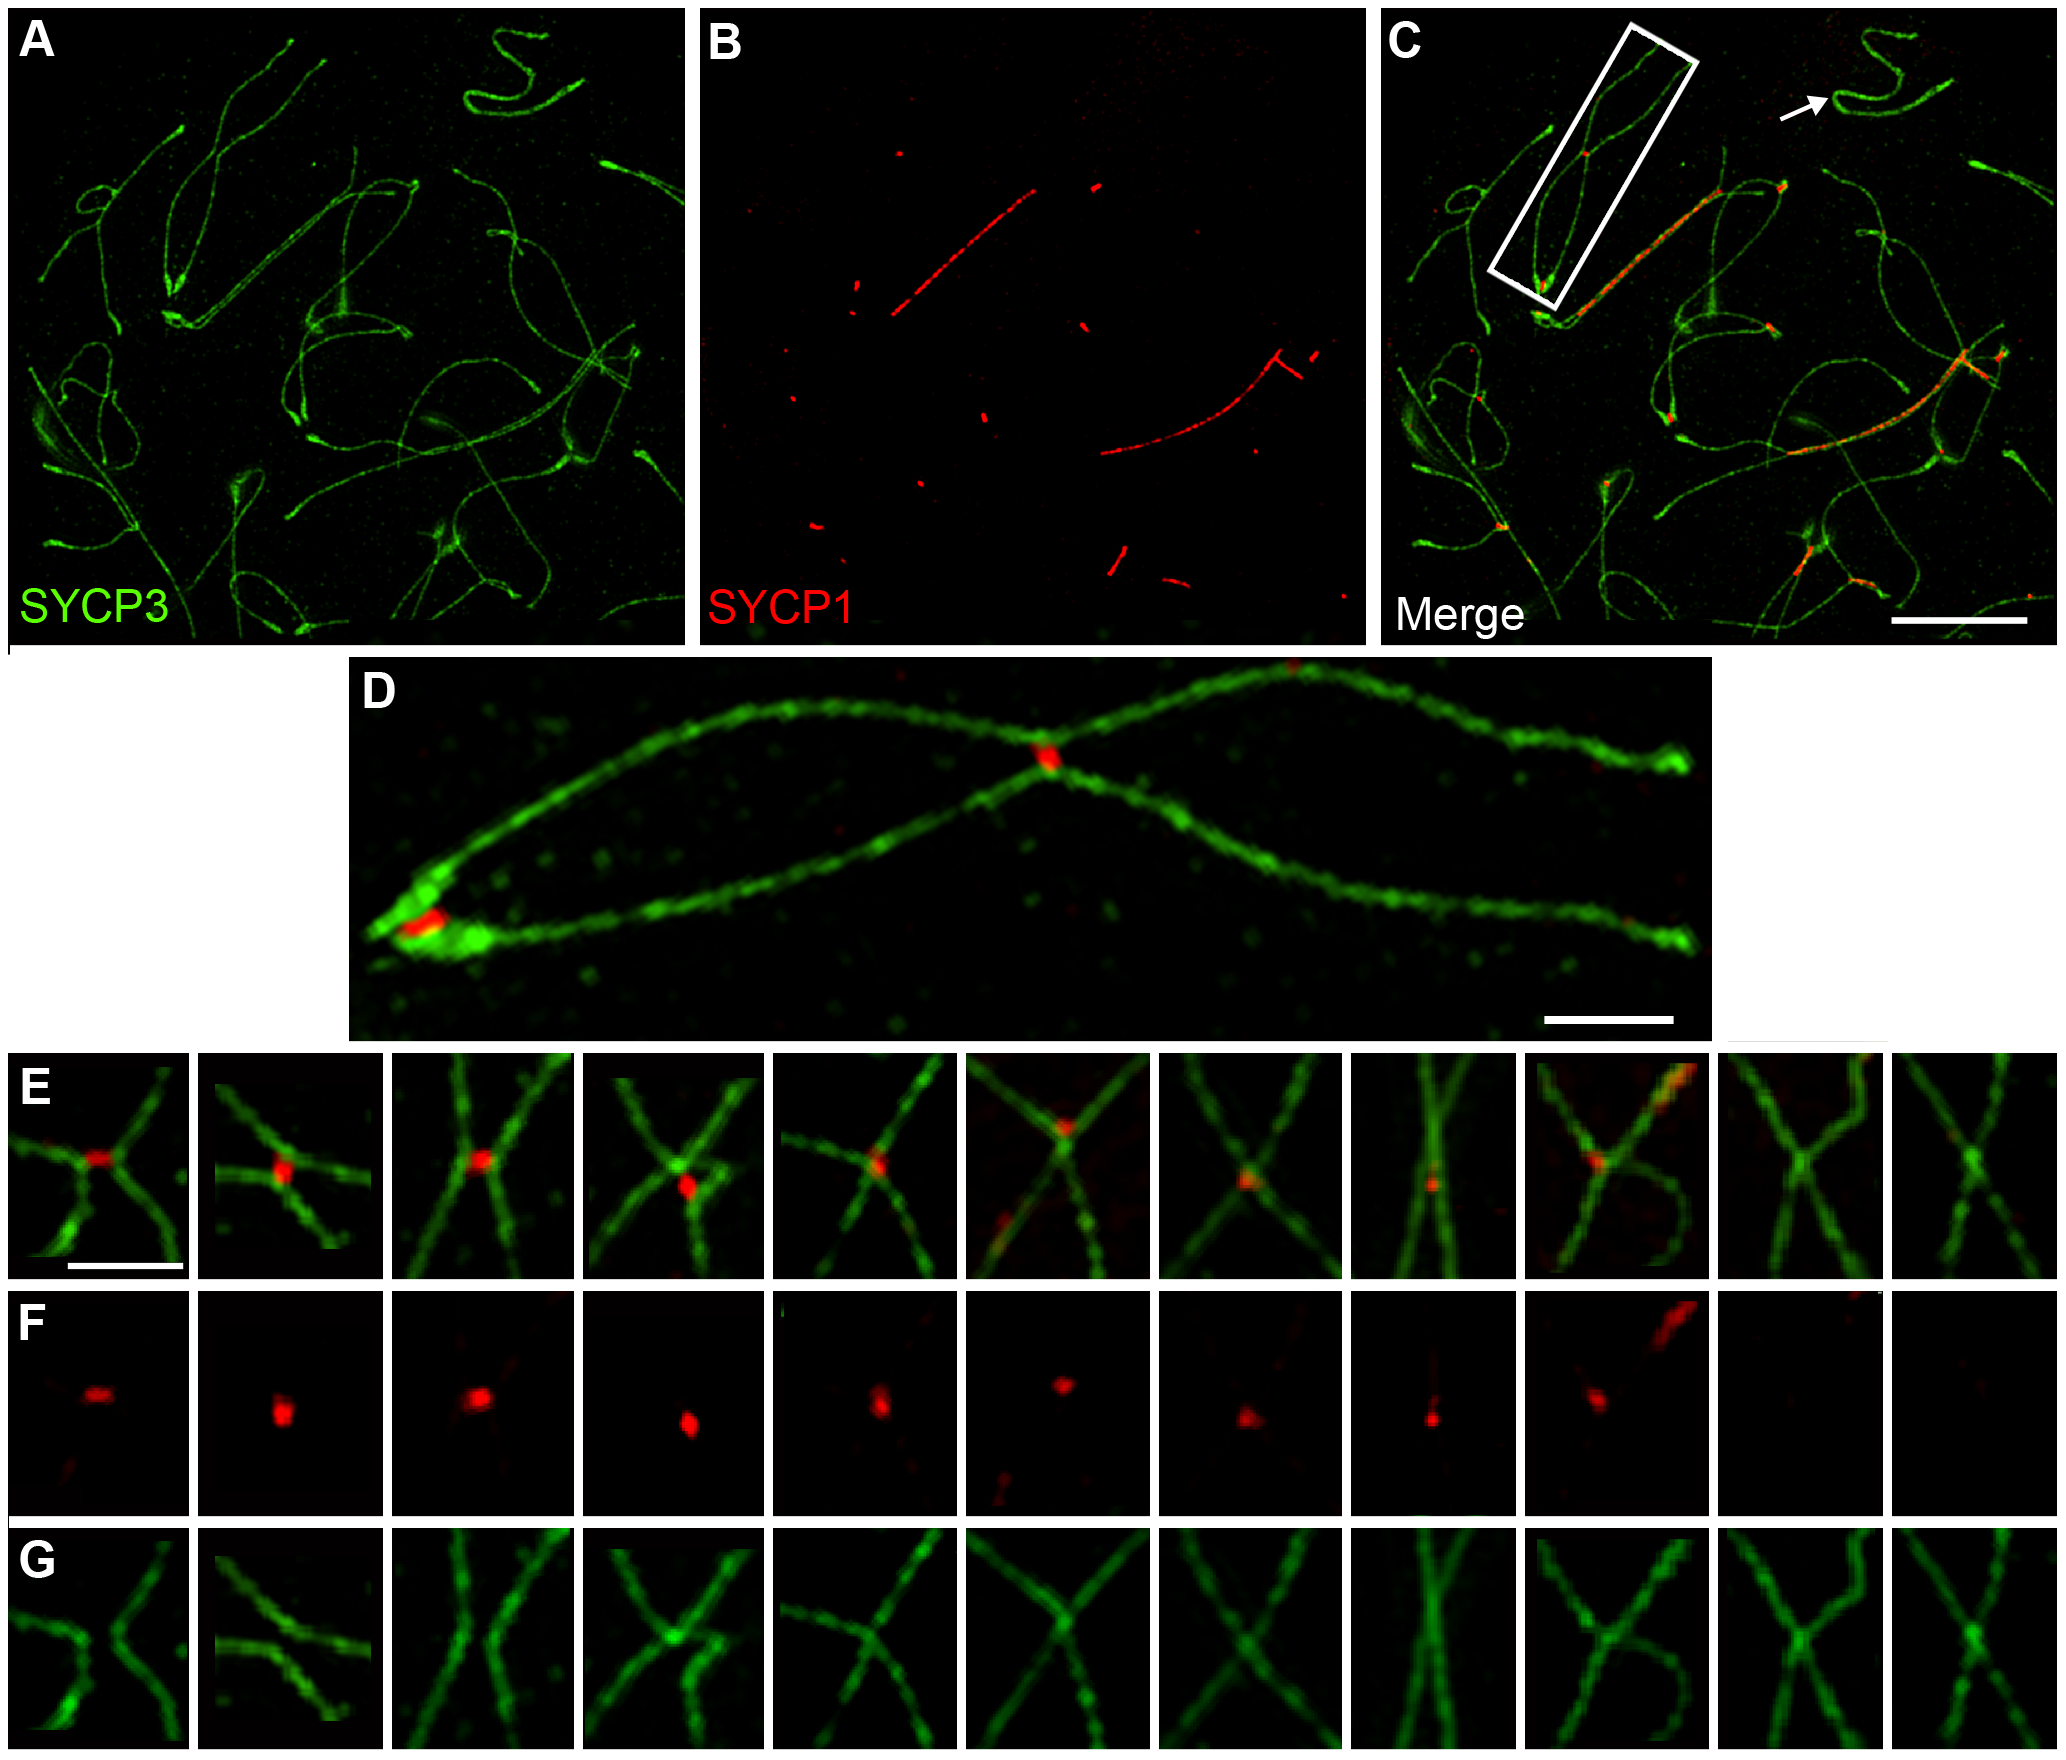 Axis remodeling revealed by structured illumination microscopy of diplotene-stage spermatocytes.